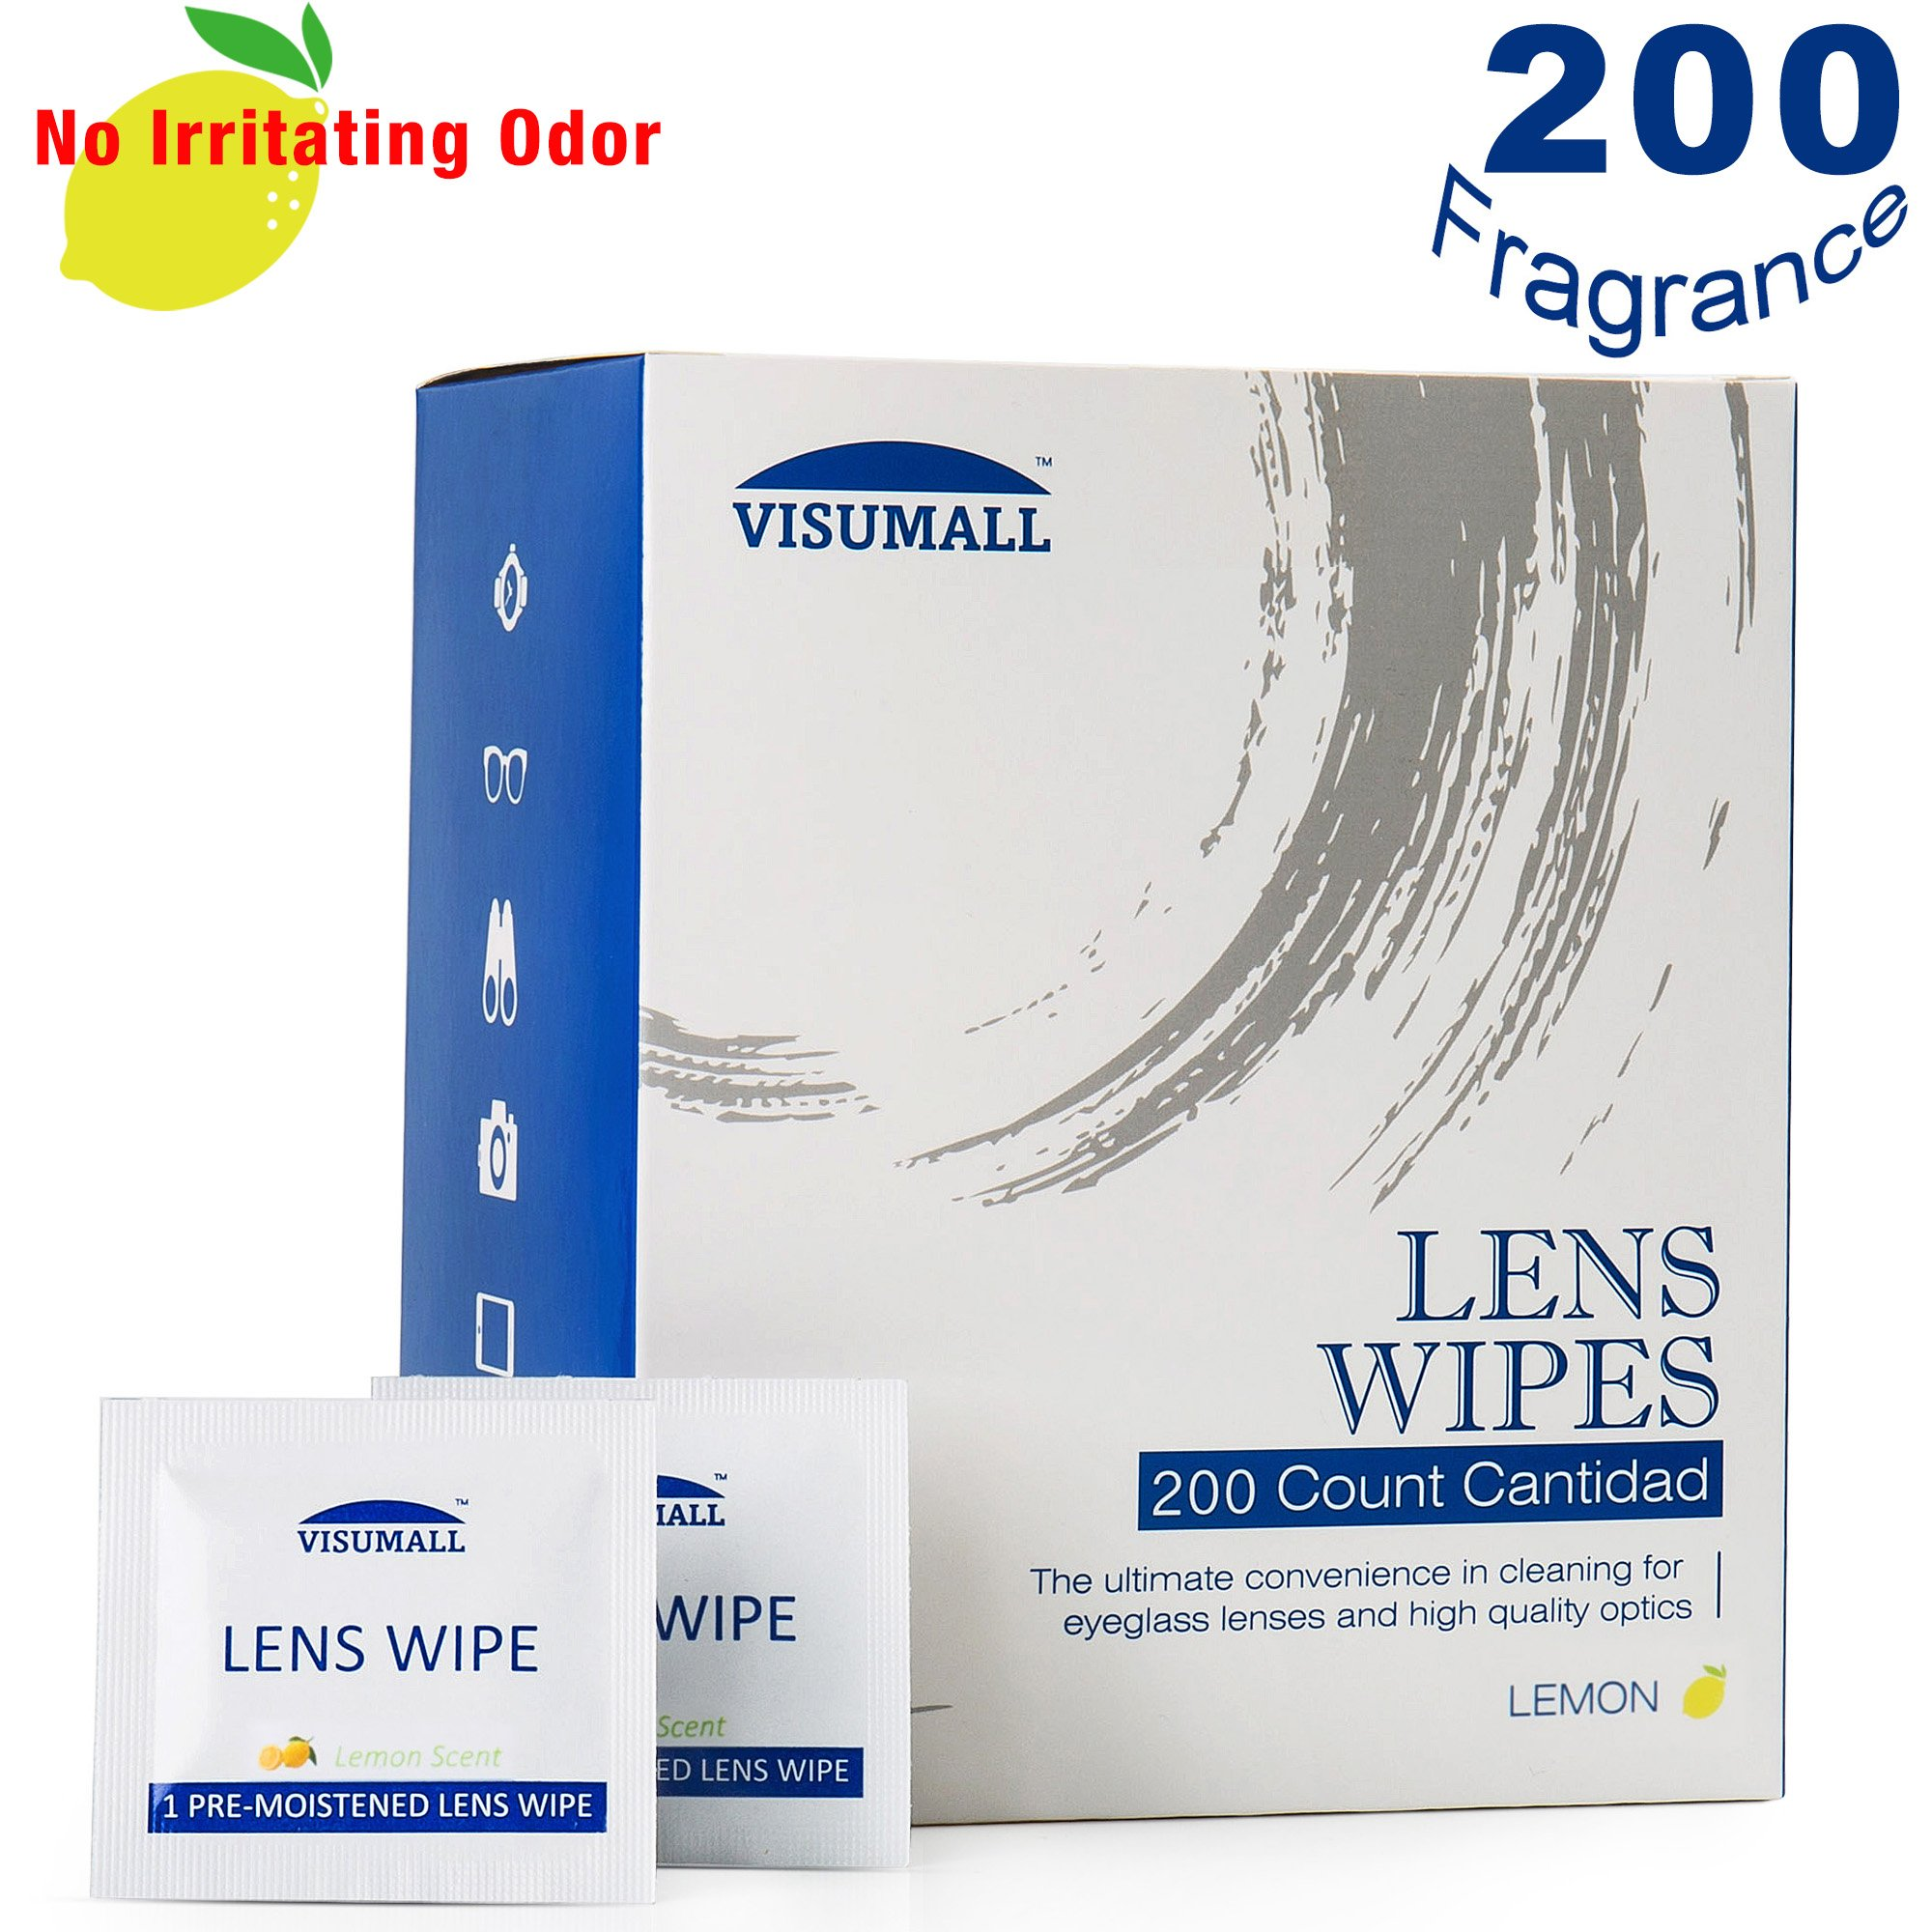 Lens Cleaning Wipes,Light Fragrance Nonirritating,Disposable,Quick Drying,Individually Wrapped,Great for Eyeglasses,Tablets,Camera Lenses,Screens,Keyboards-200 Lemon